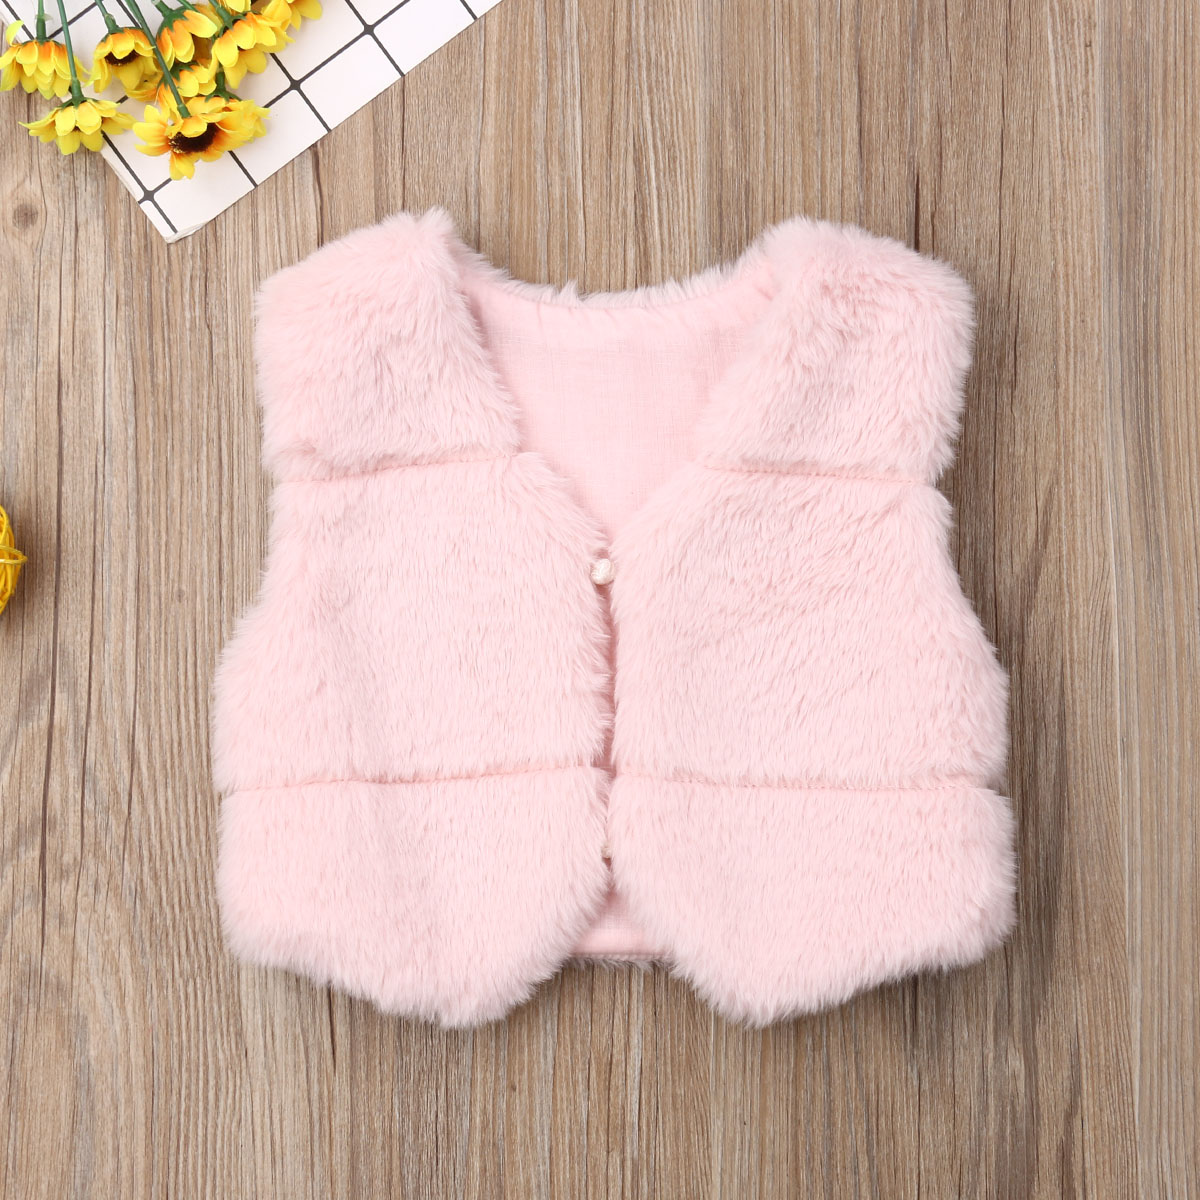 New Fall Winter Fashion Kids Baby Girls Faux Fur Vest Little Girls Princess Cute Thick Warm Coat Toddler Waistcoats Outerwear